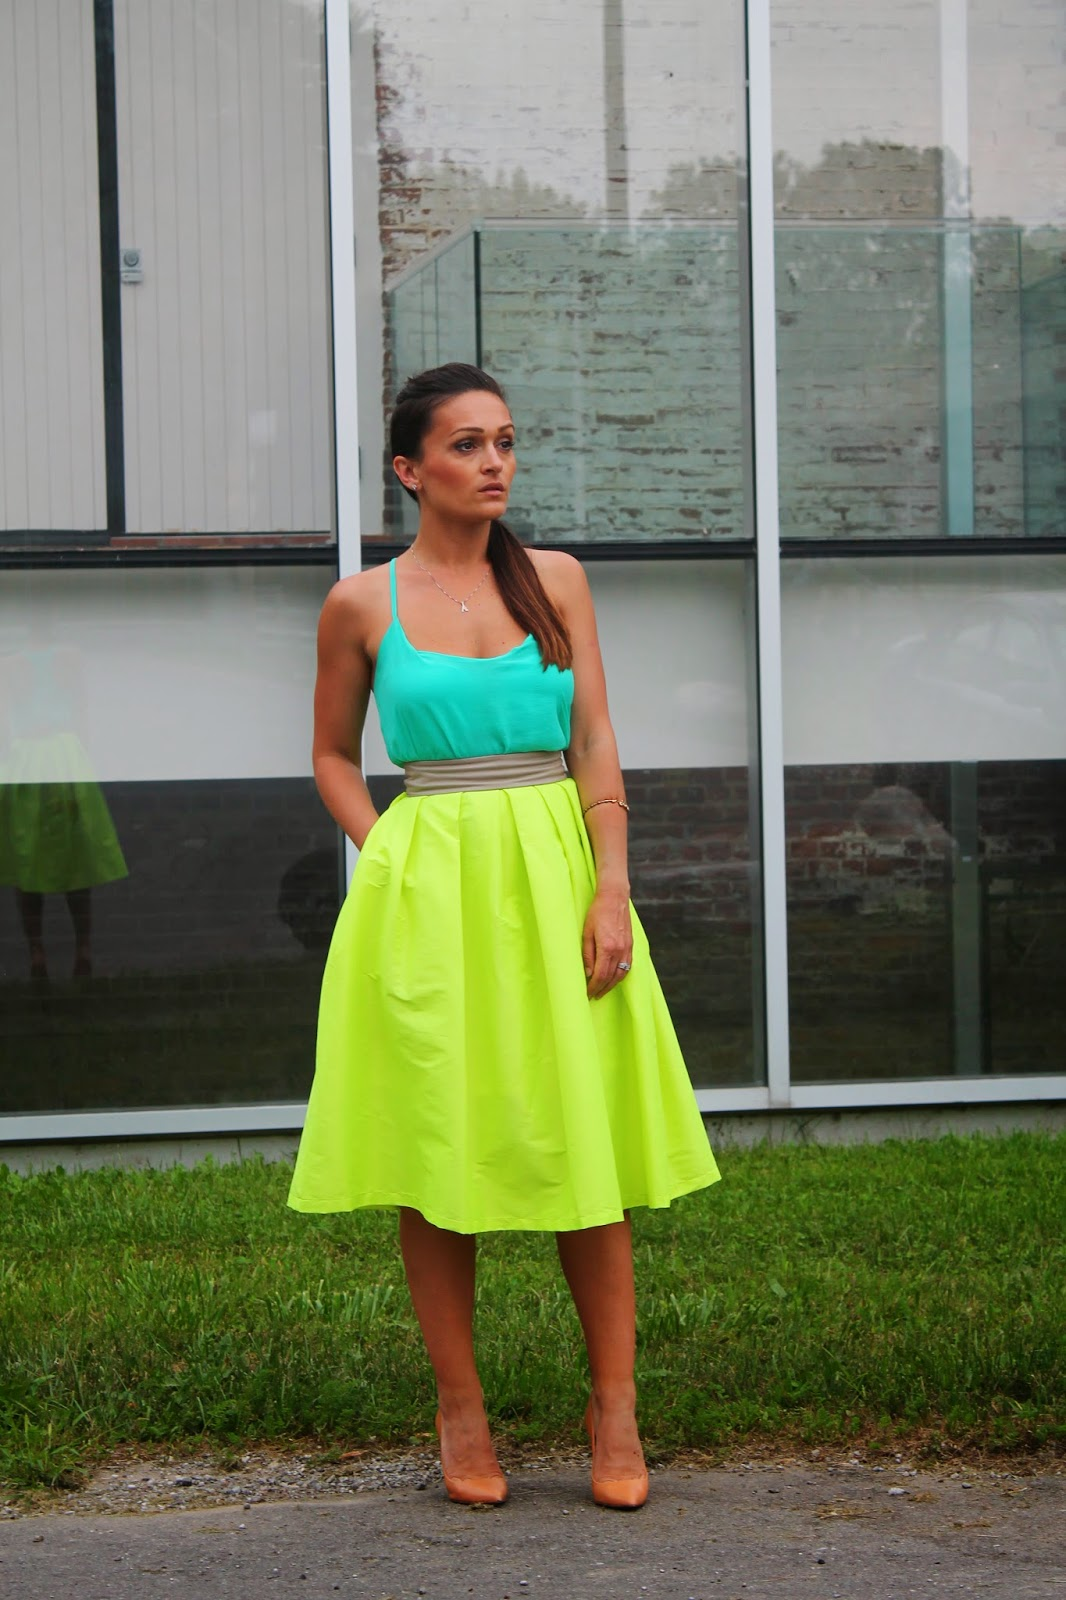 Neon skirt, Midi skirt, style inspo, canadian fashion blogger, toronto street style, blogerke, letnji outfit, summer outfit